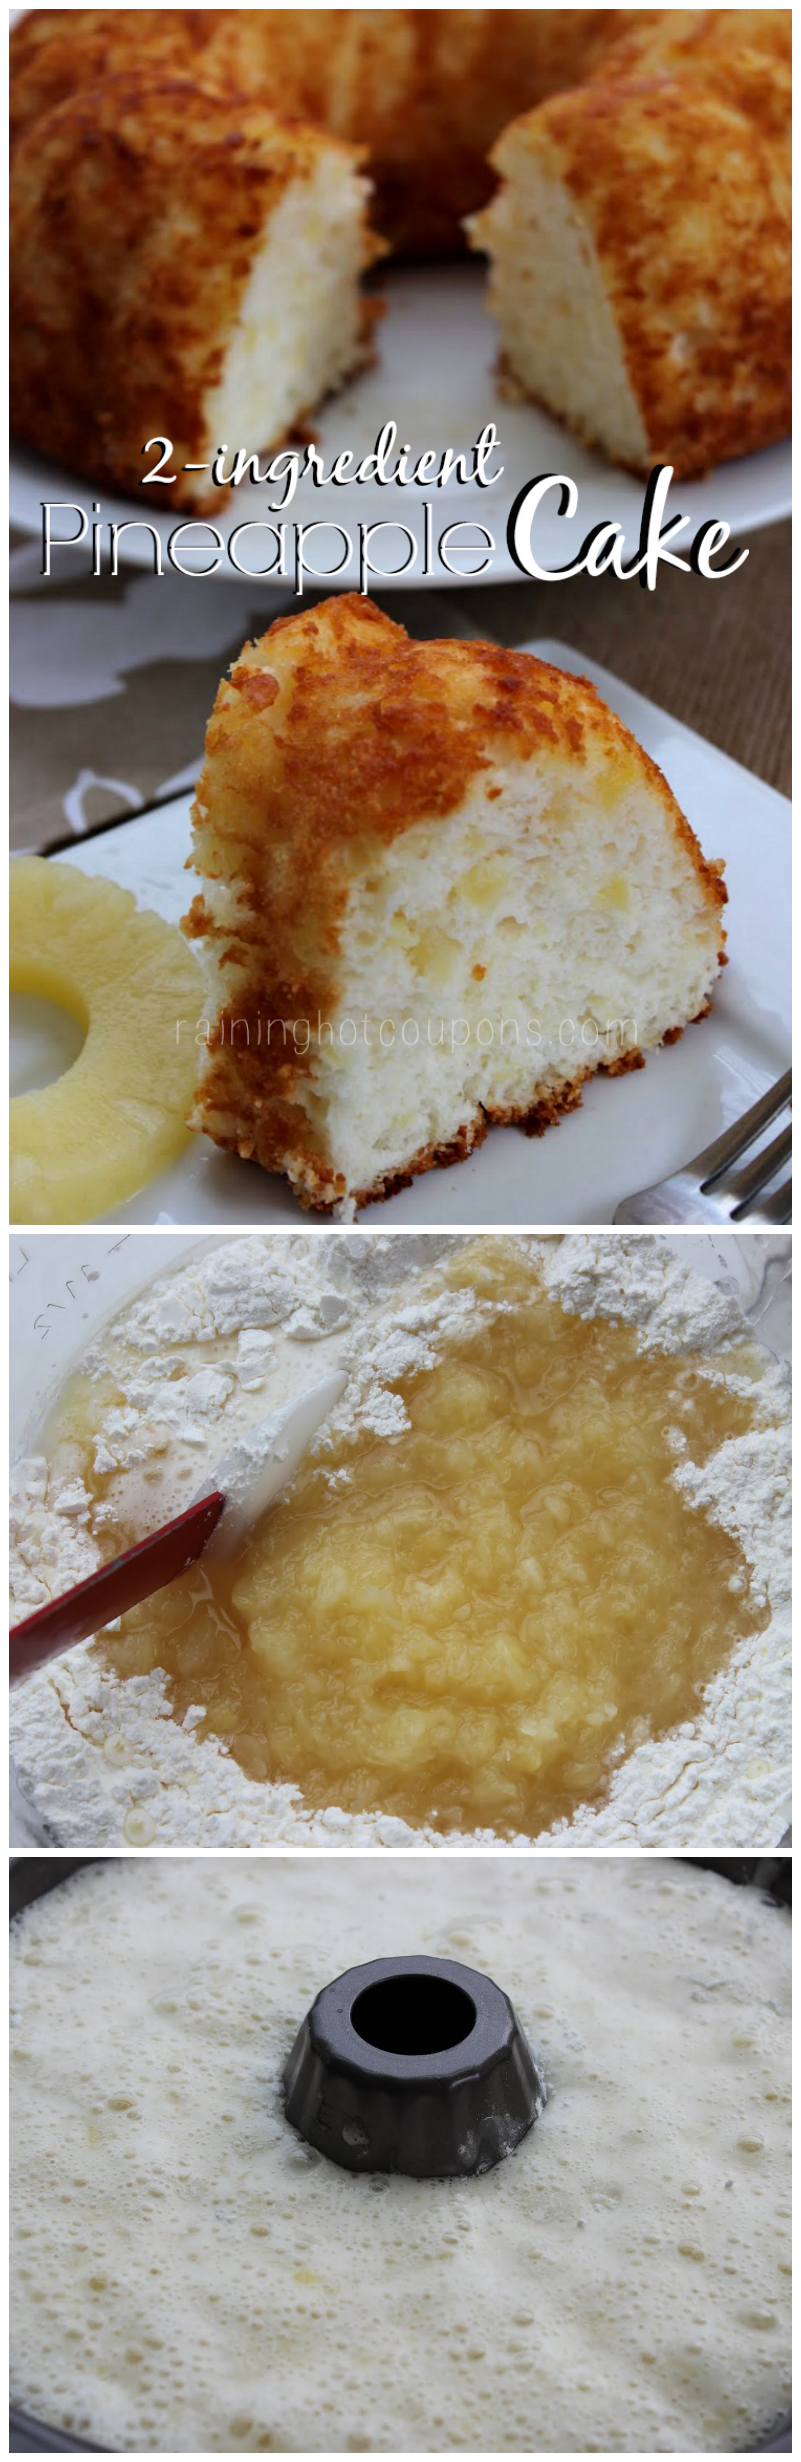 Pineapple Cake Only 2 Ingredients